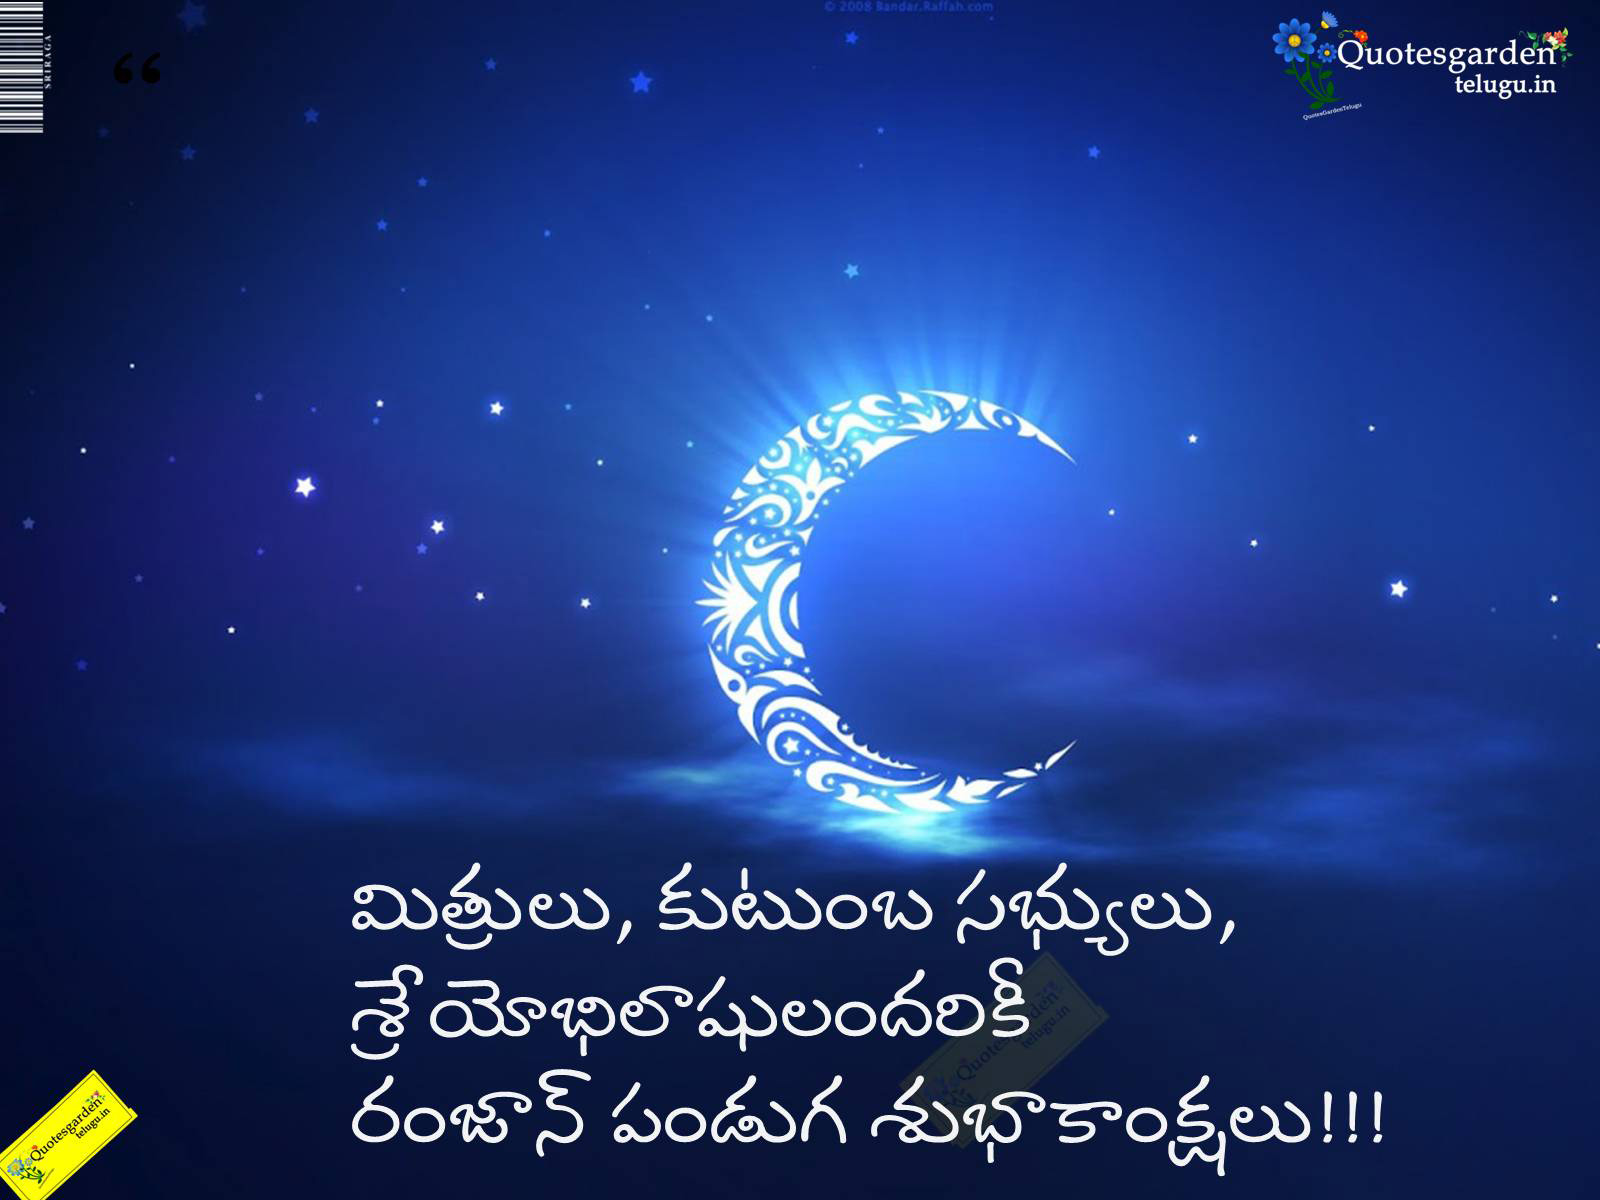 Ramzan Festival Greetings Wishes Wallpapers Quotes Garden Telugu